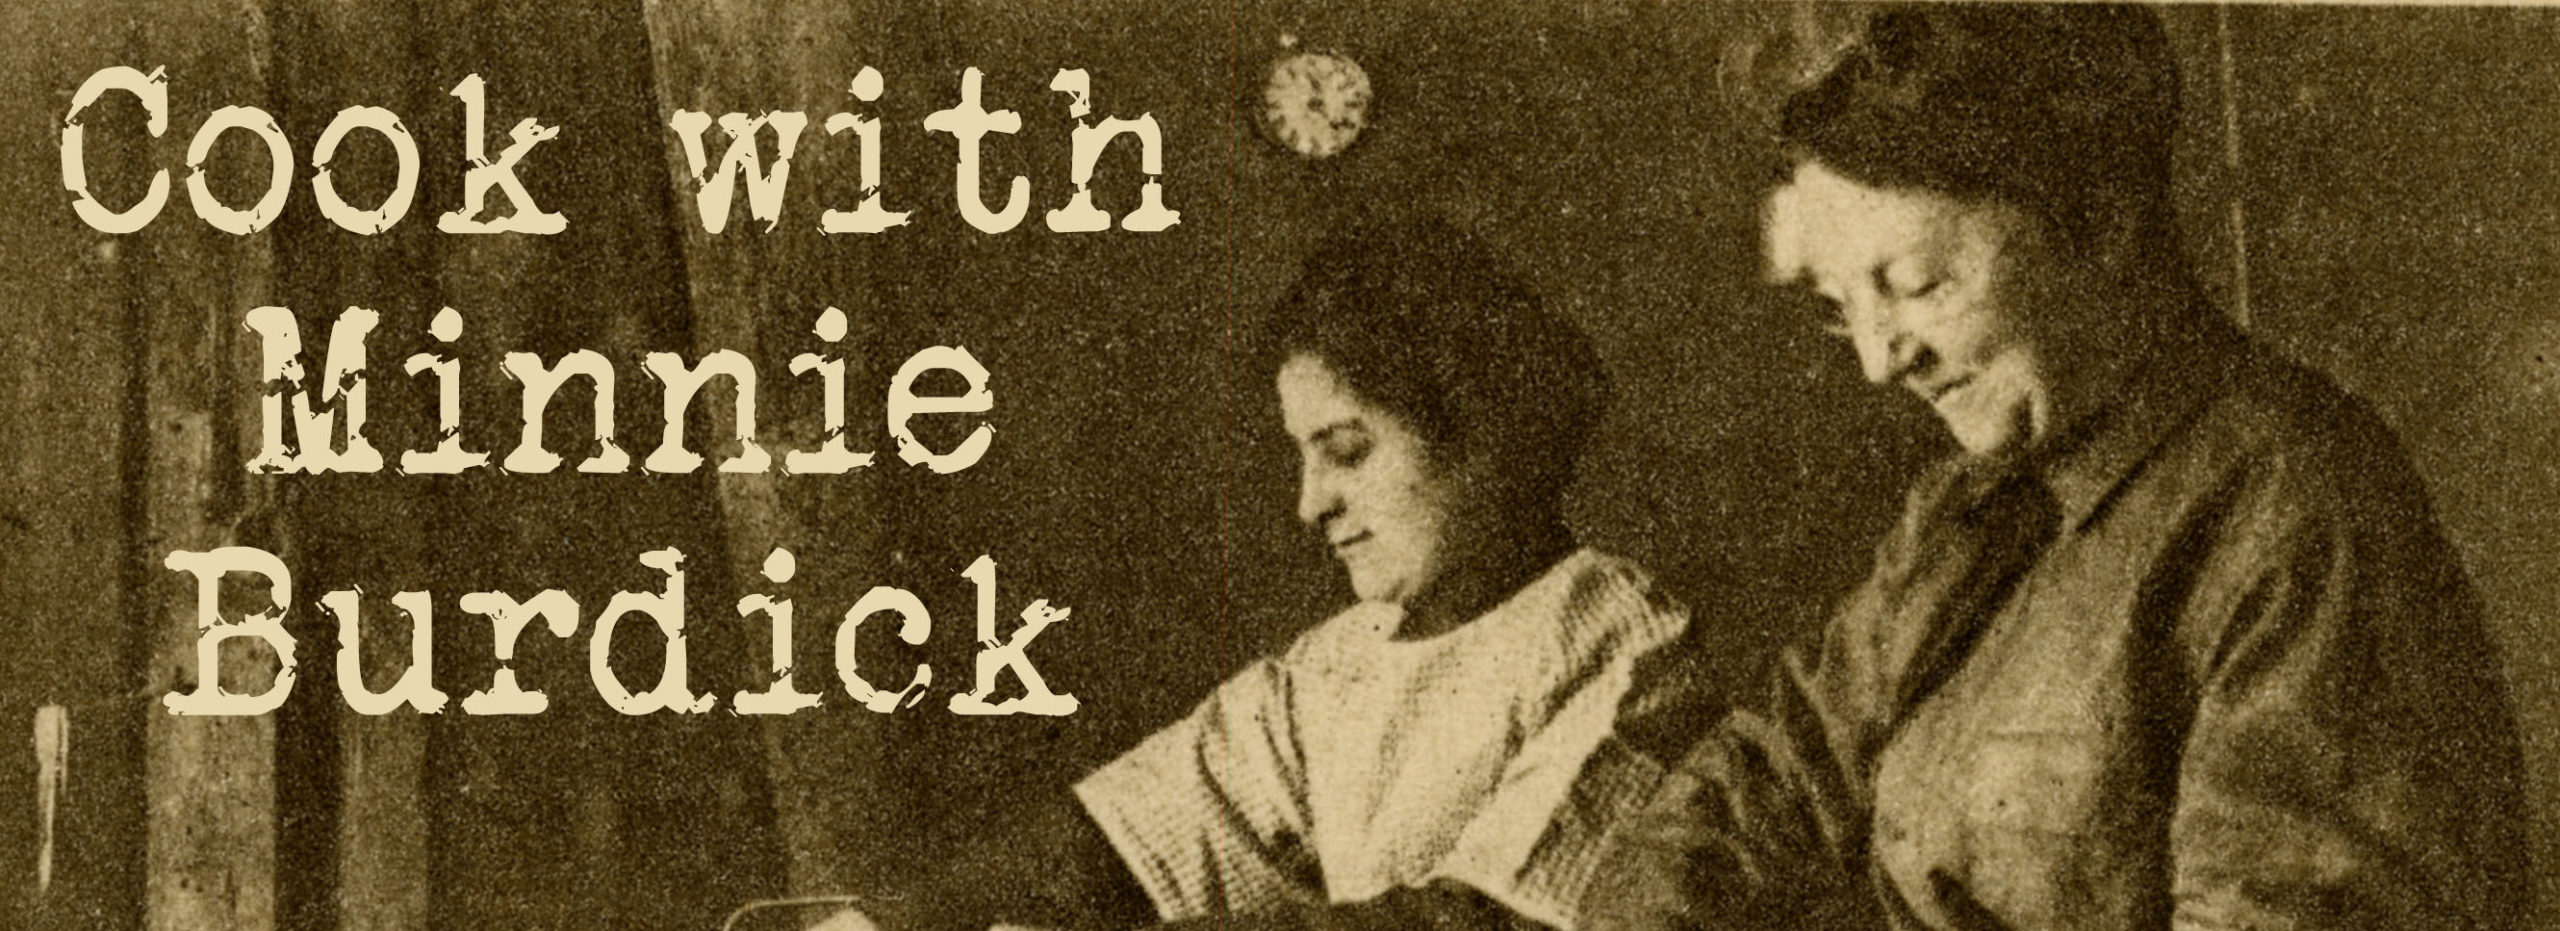 Image of two women with text Cook with Minnie Burdick